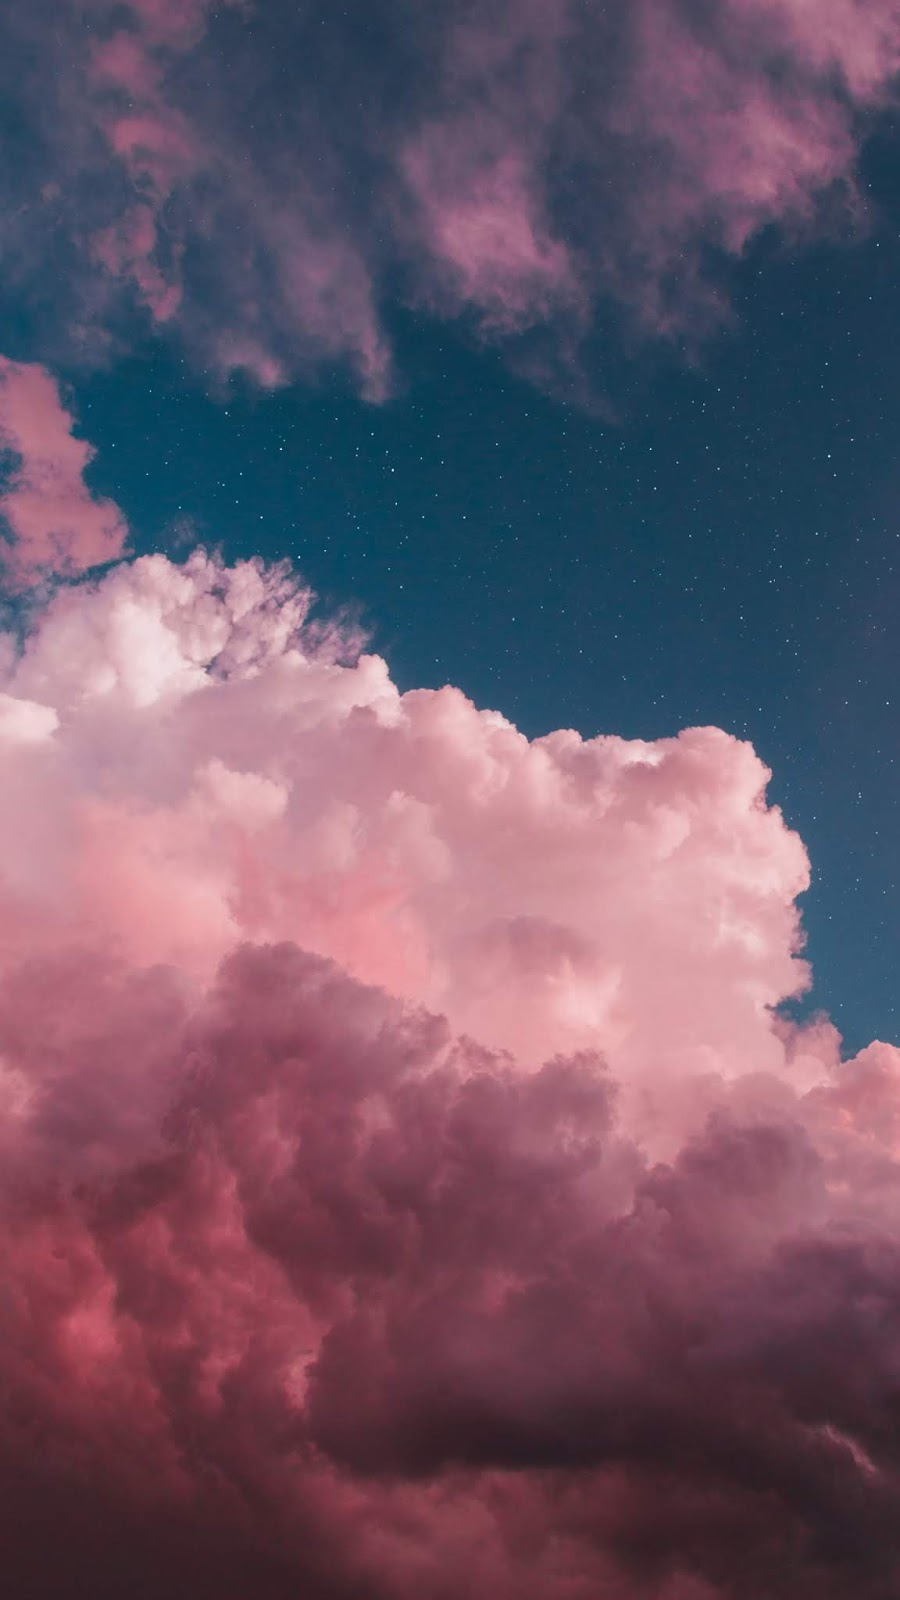 Pink clouds in the night sky